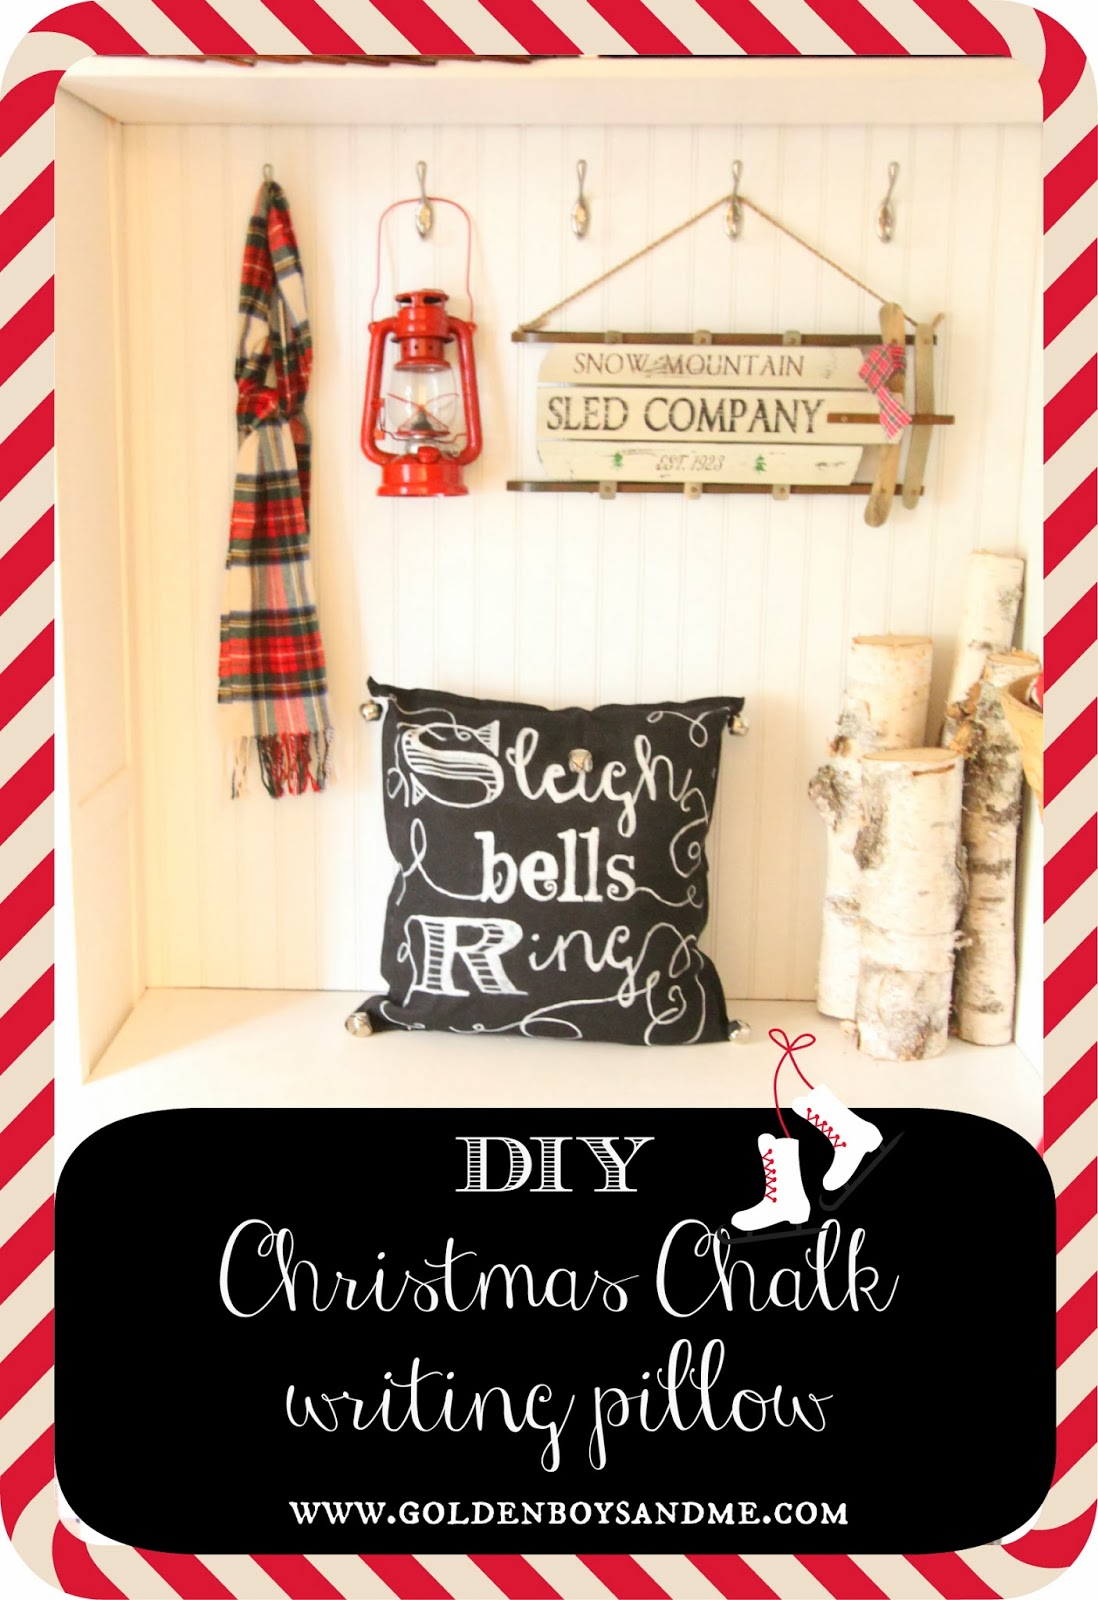 Diy Christmas Chalk Writing Pillow